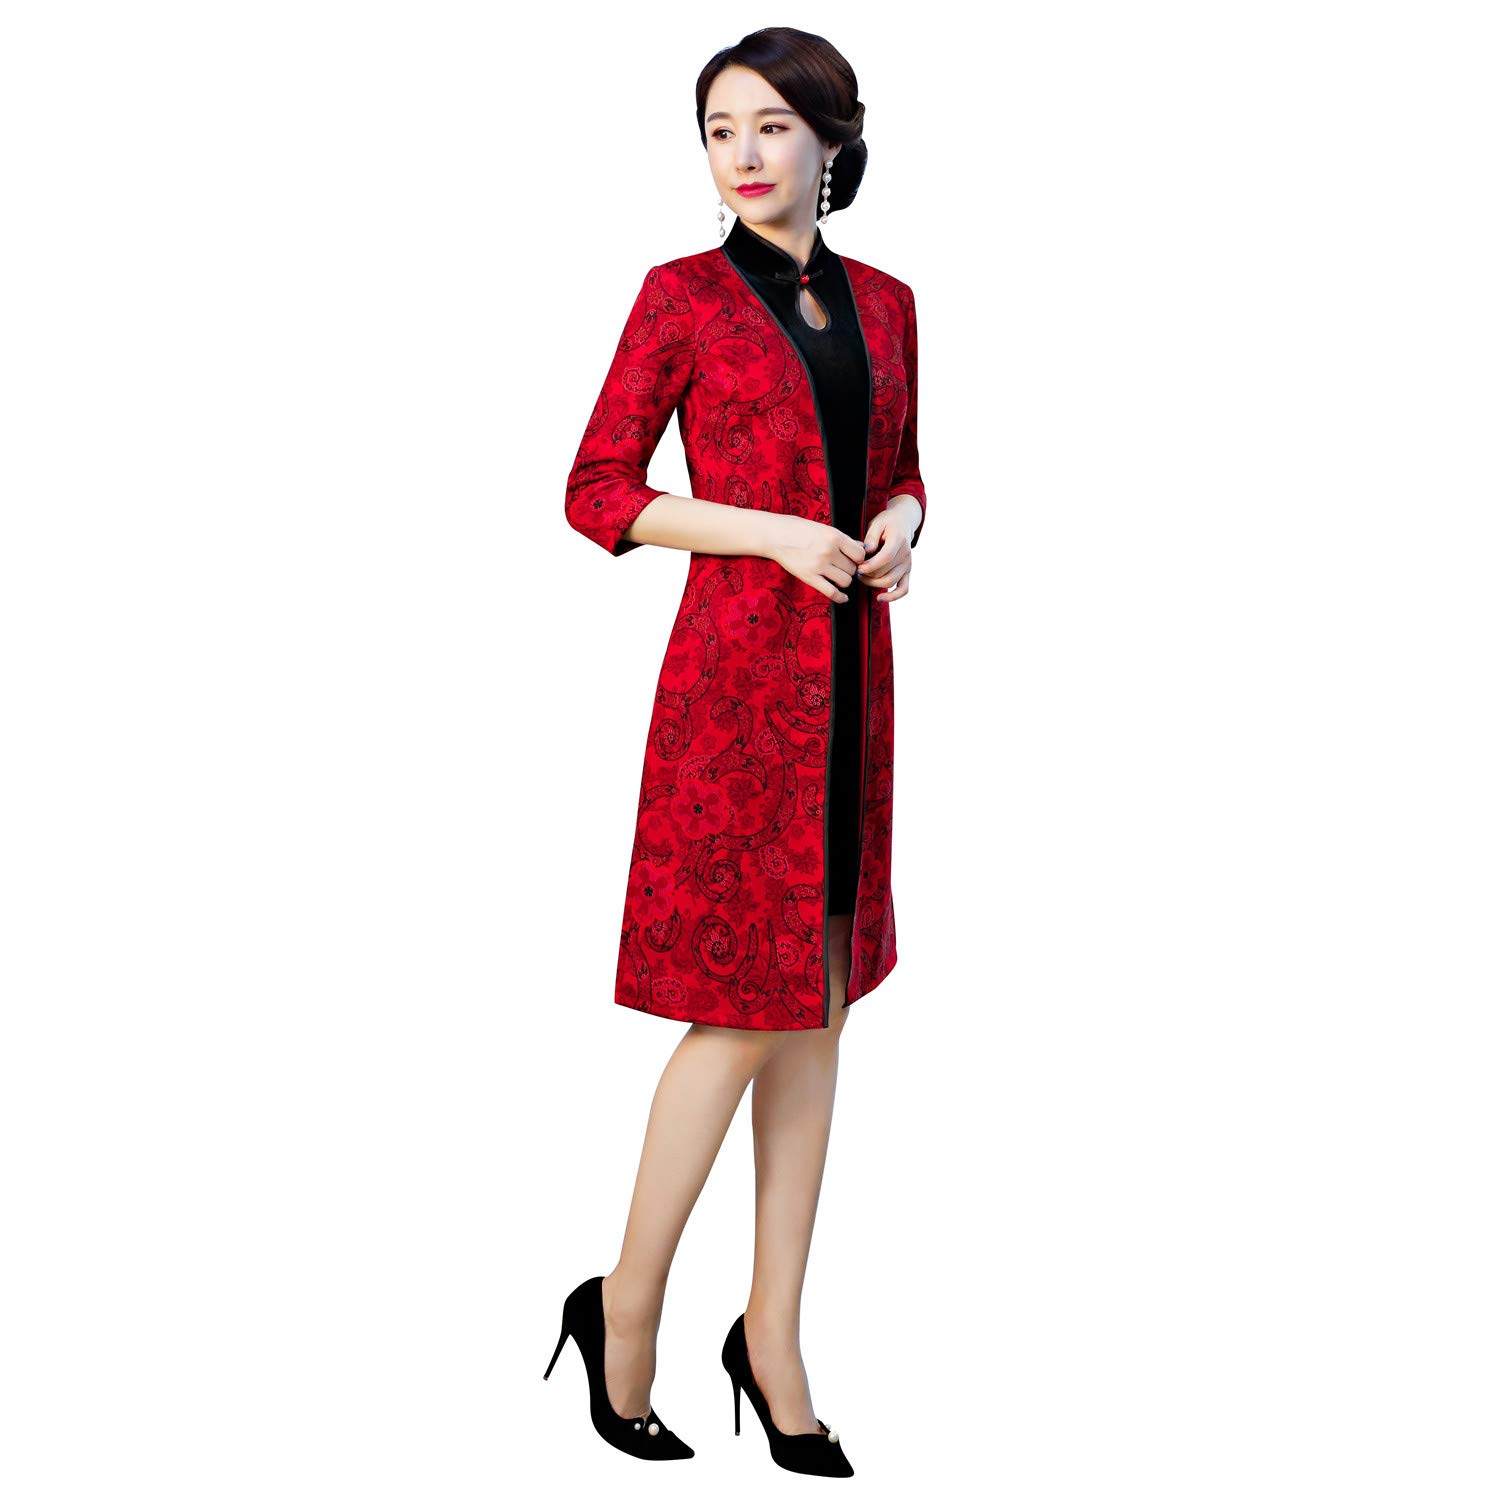 Shanghai Story Suede Cheongsam Dress Chinese Qipao with 3/4 Sleeve Coat Set M 01